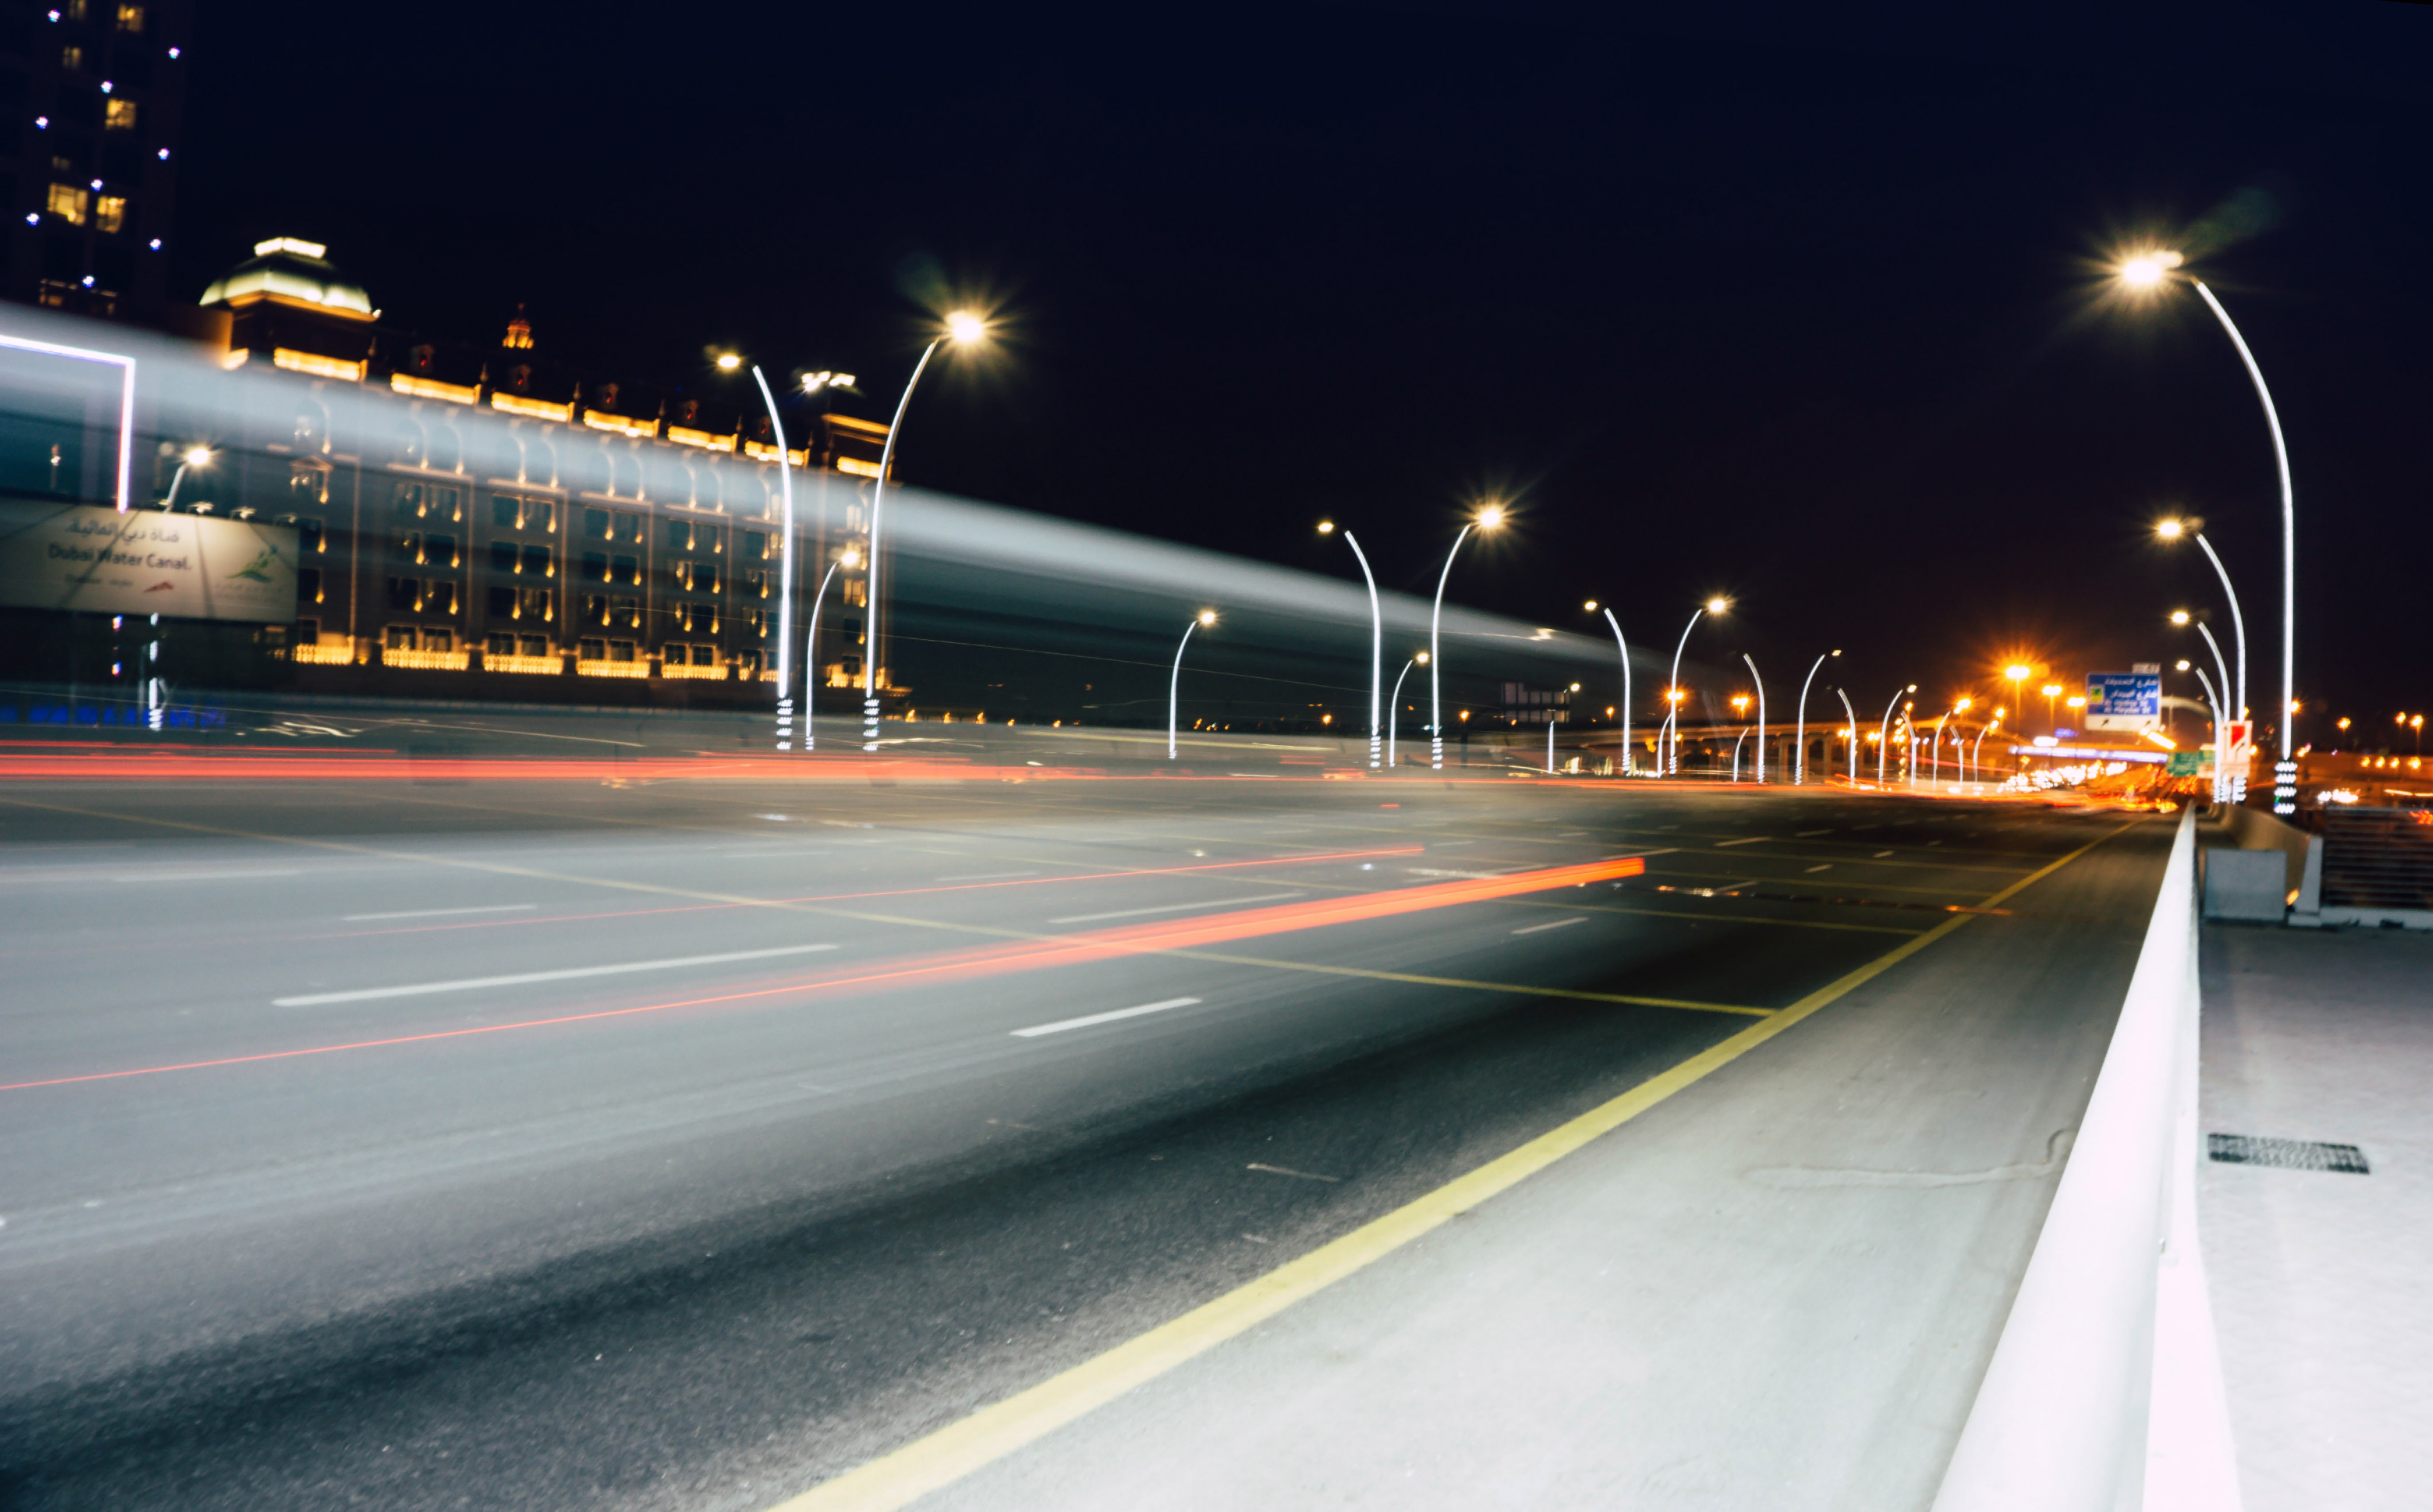 Street Lights during Nighttime, Asphalt, Light trail, Travel, Transportation system, HQ Photo